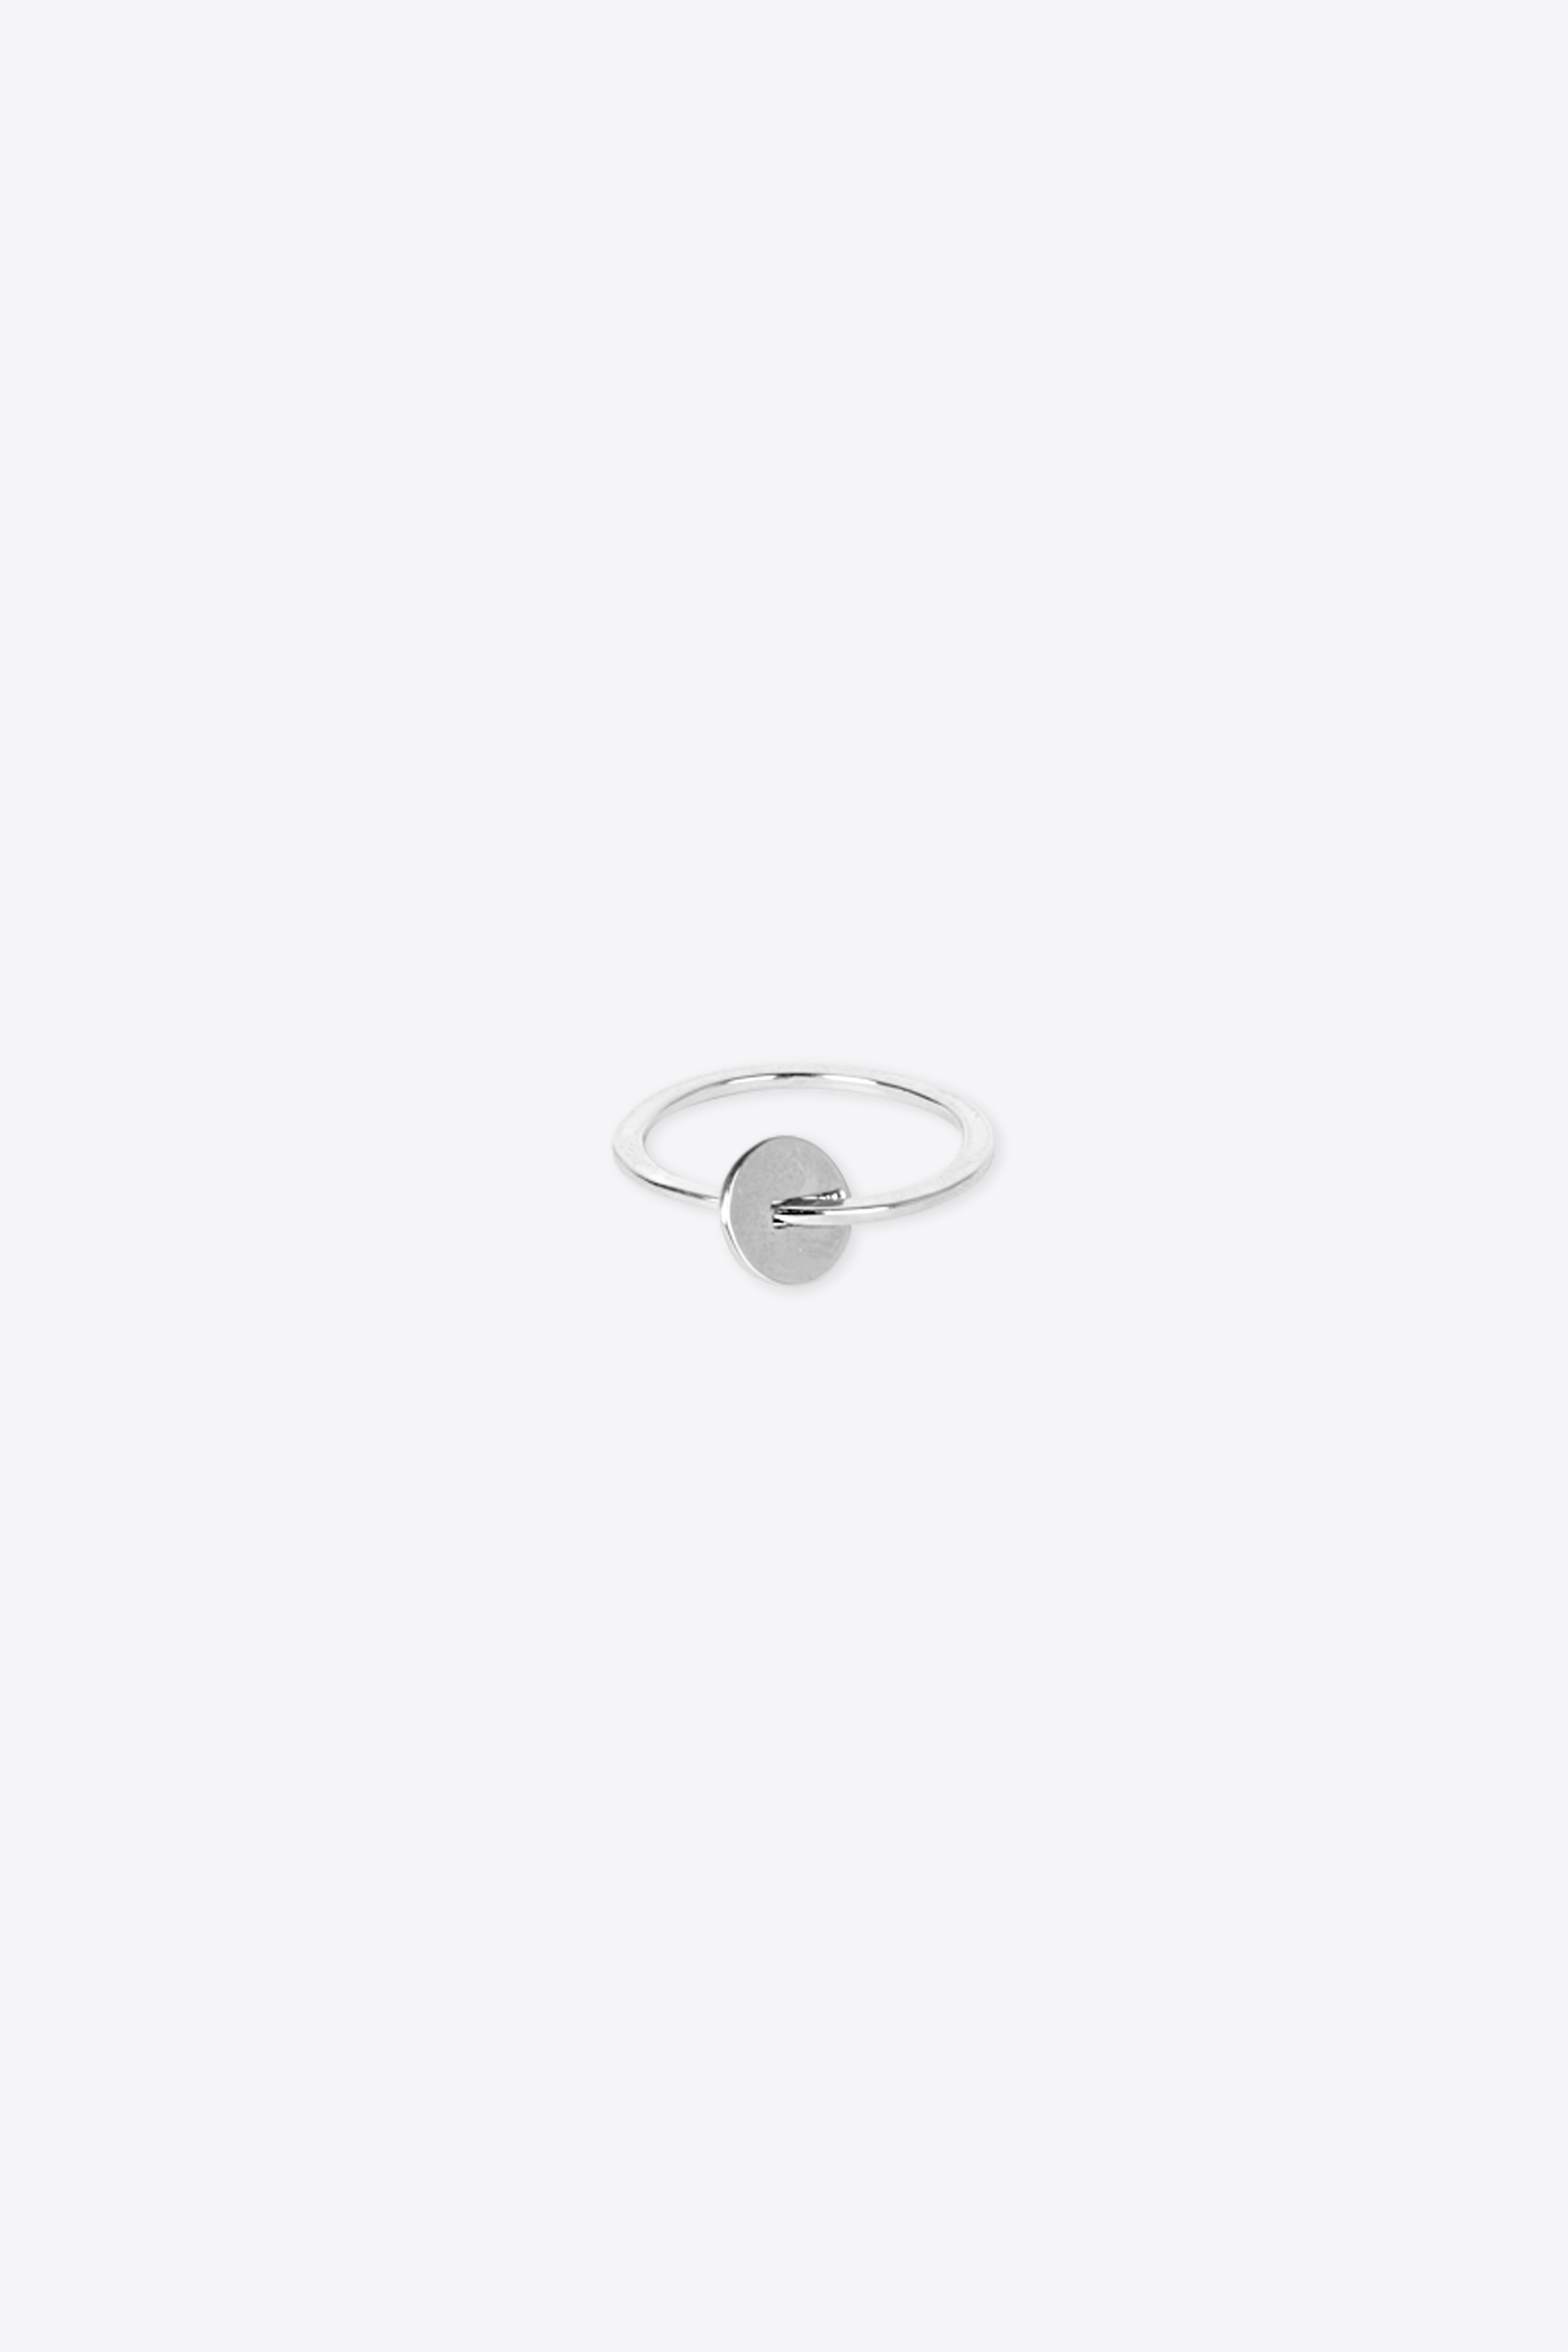 Ring H075 Silver 3